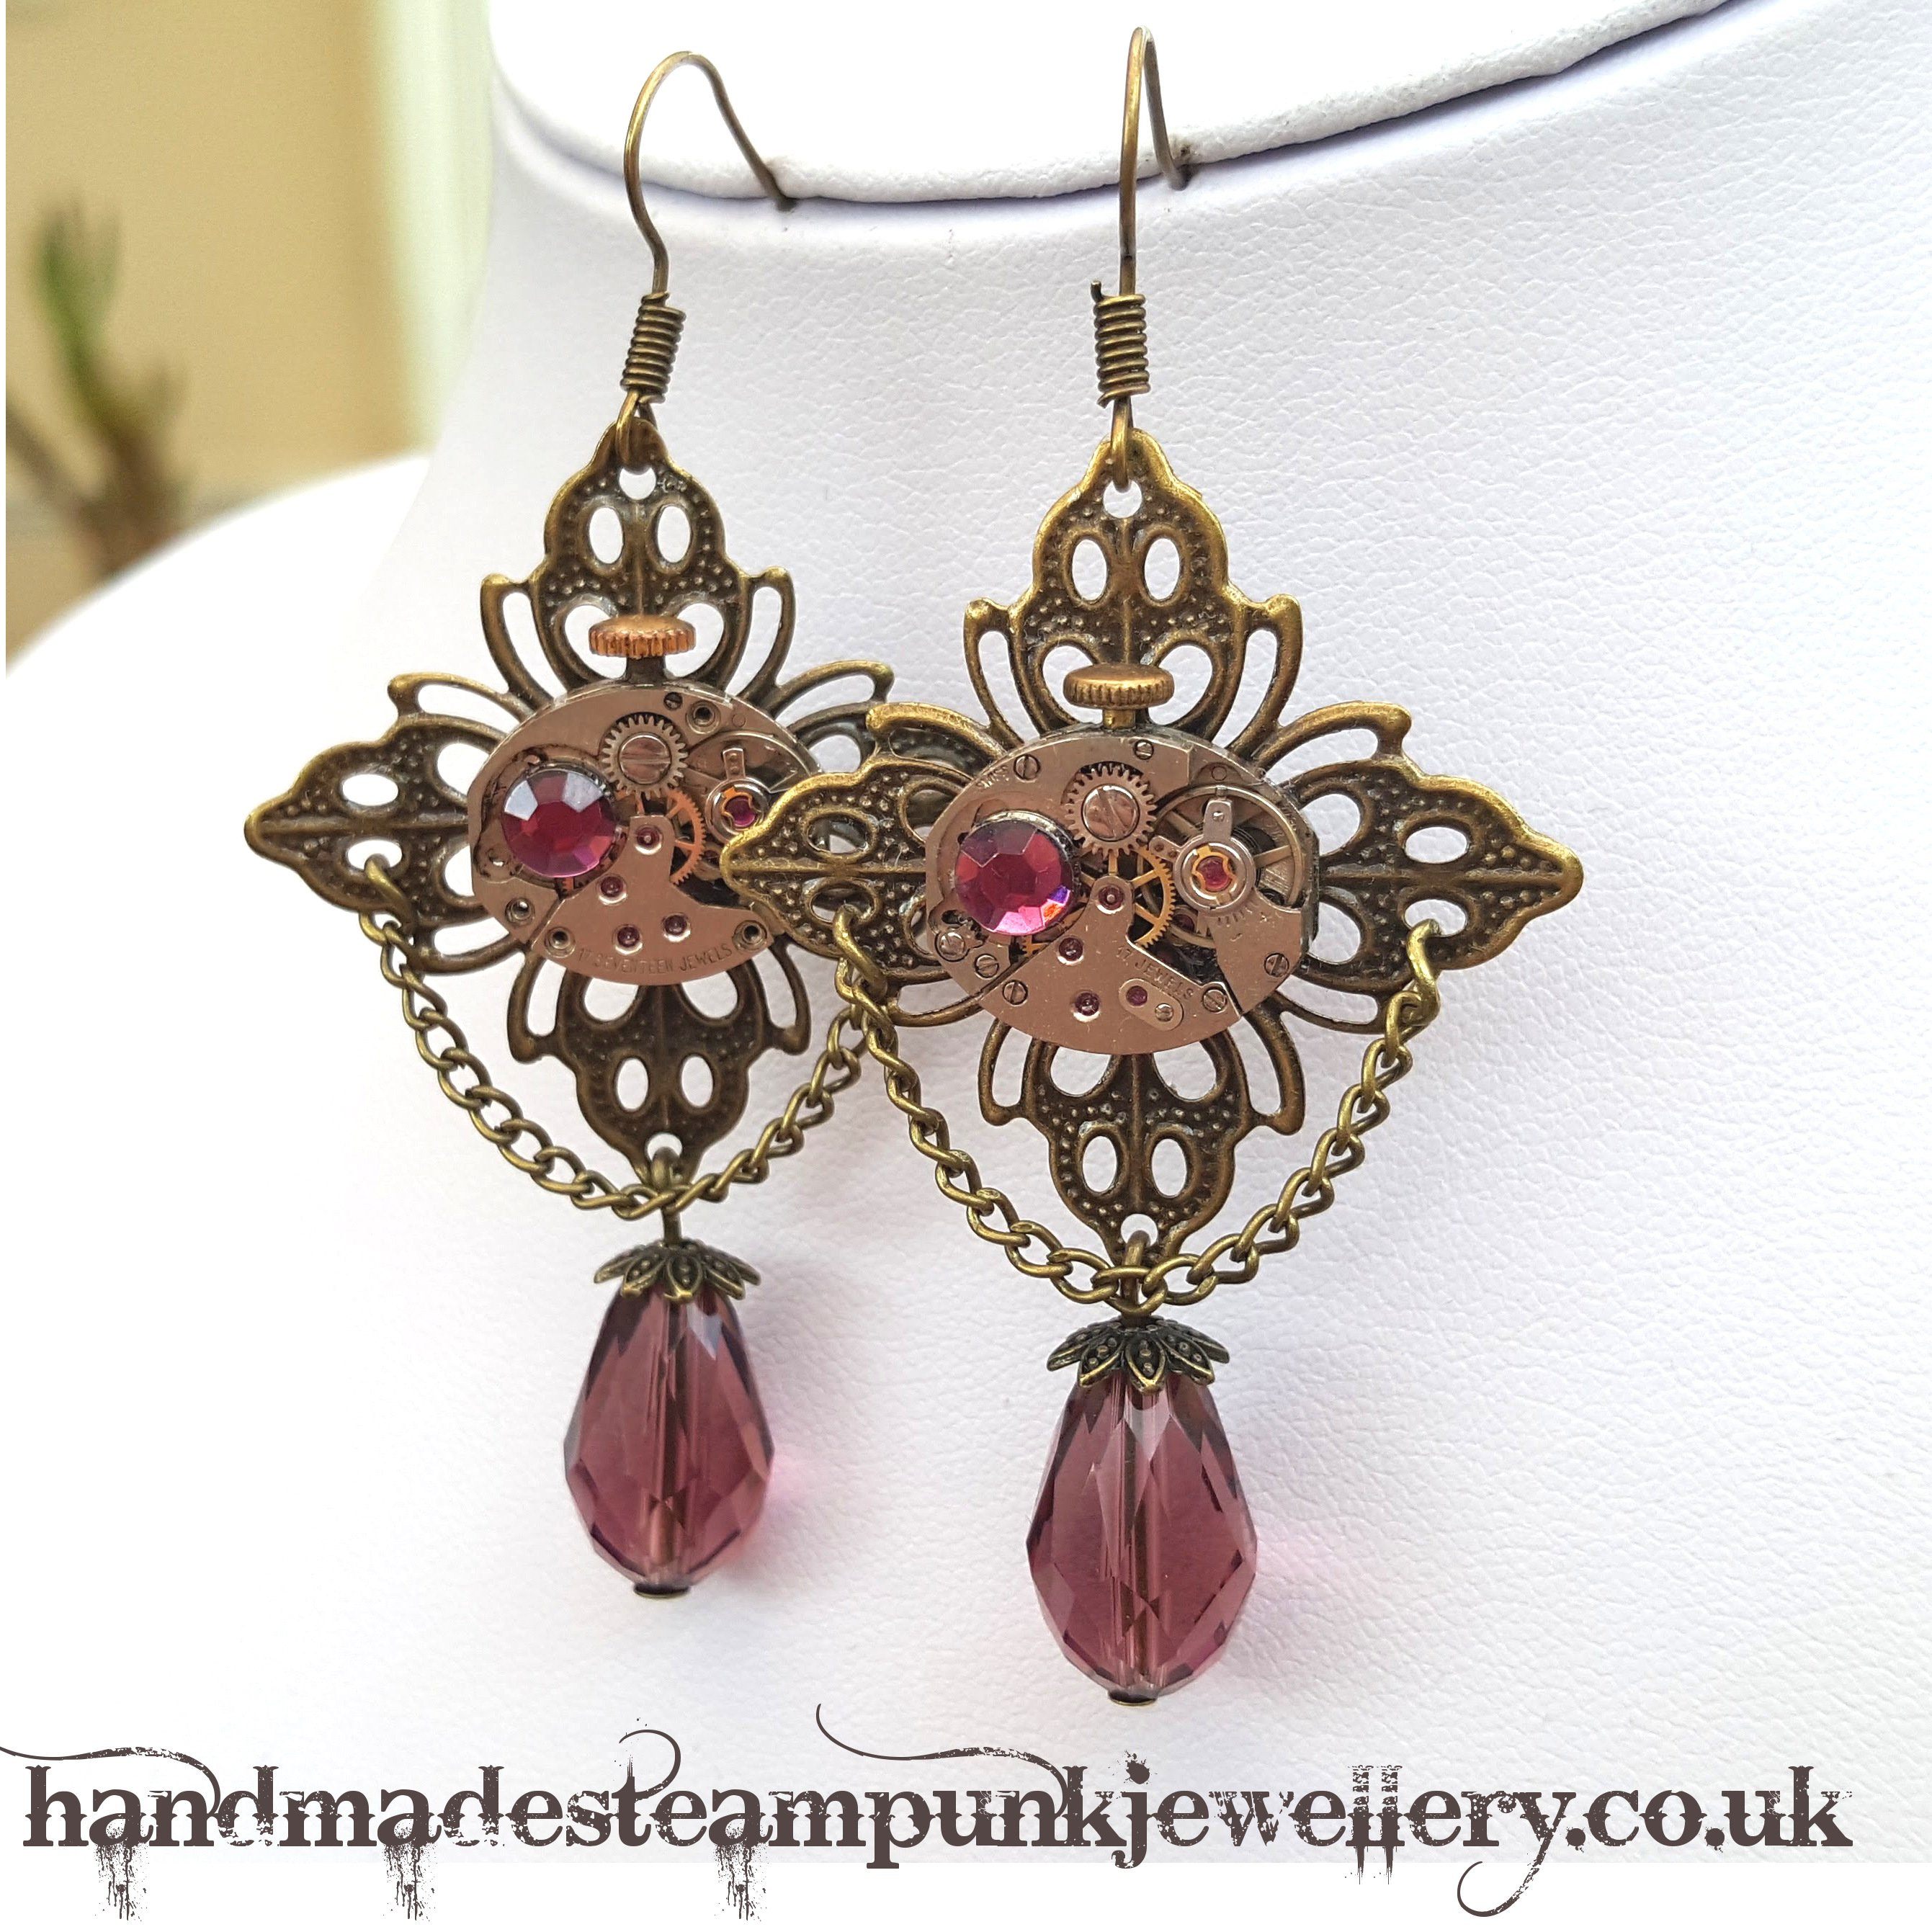 Steampunk Watch Movement Earrings - Handmade Steampunk Jewellery